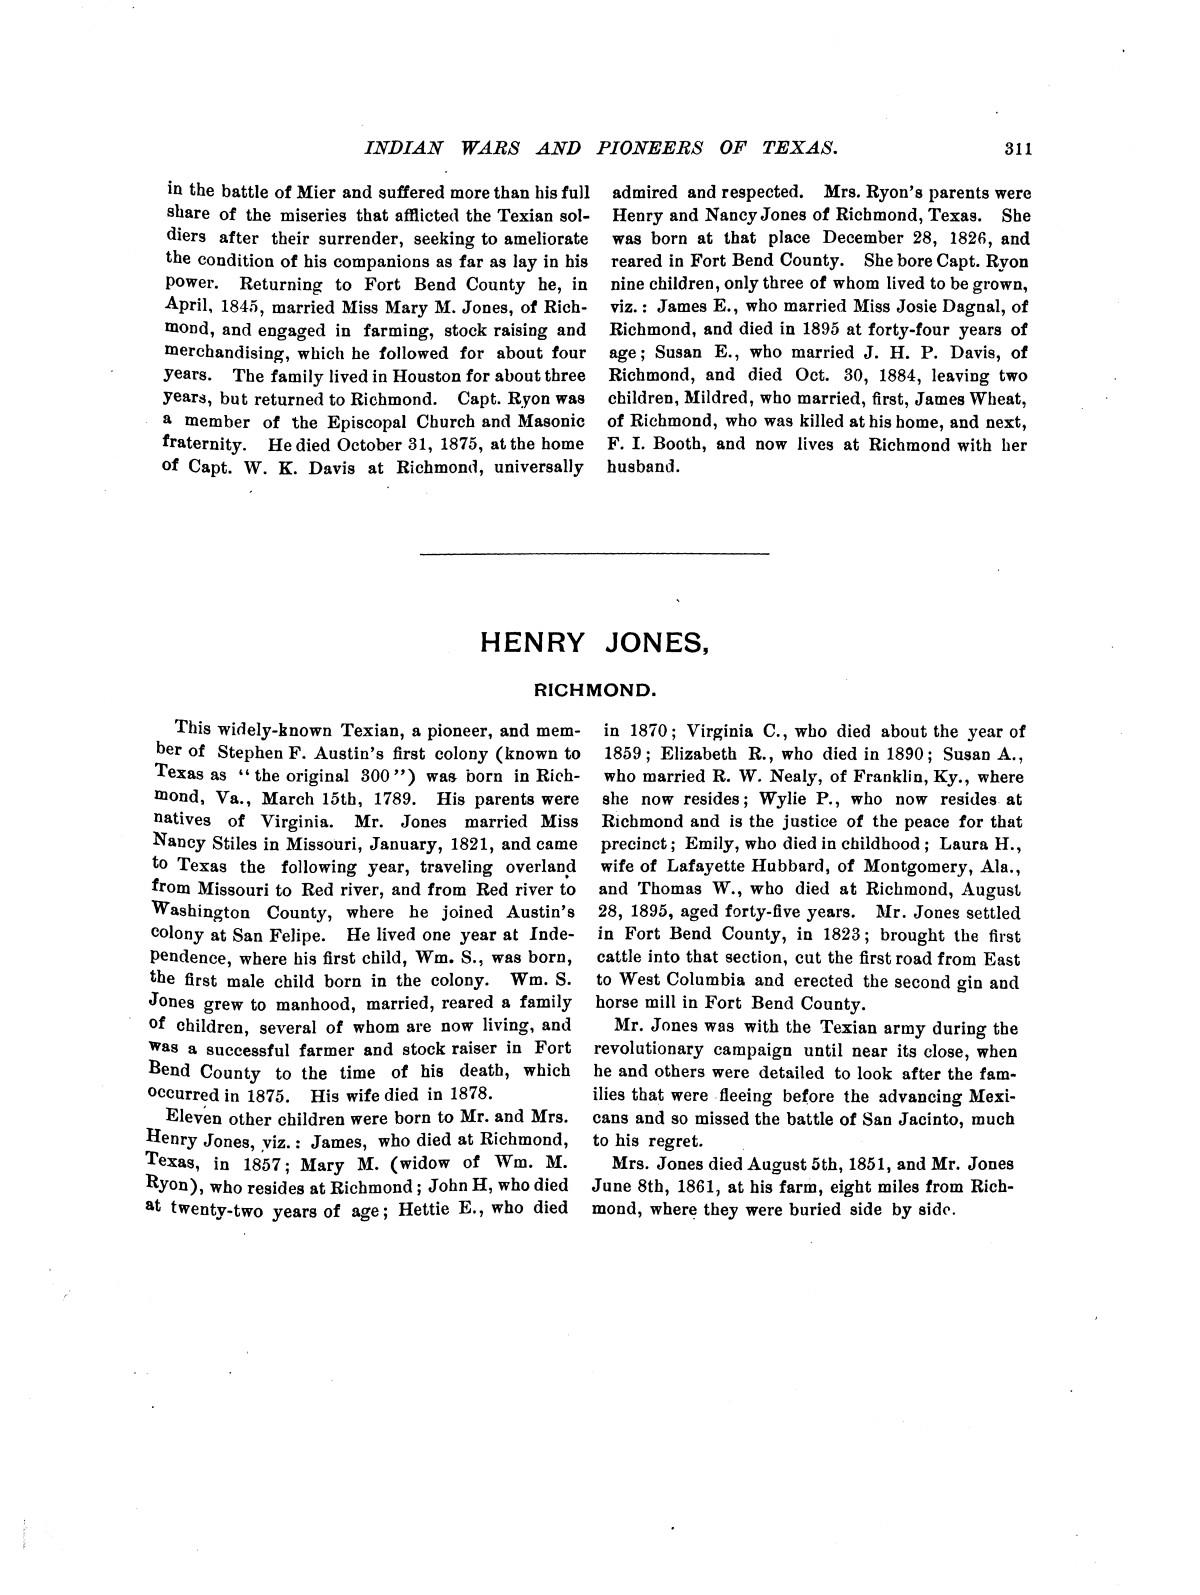 Indian wars and pioneers of Texas / by John Henry Brown.                                                                                                      [Sequence #]: 368 of 894